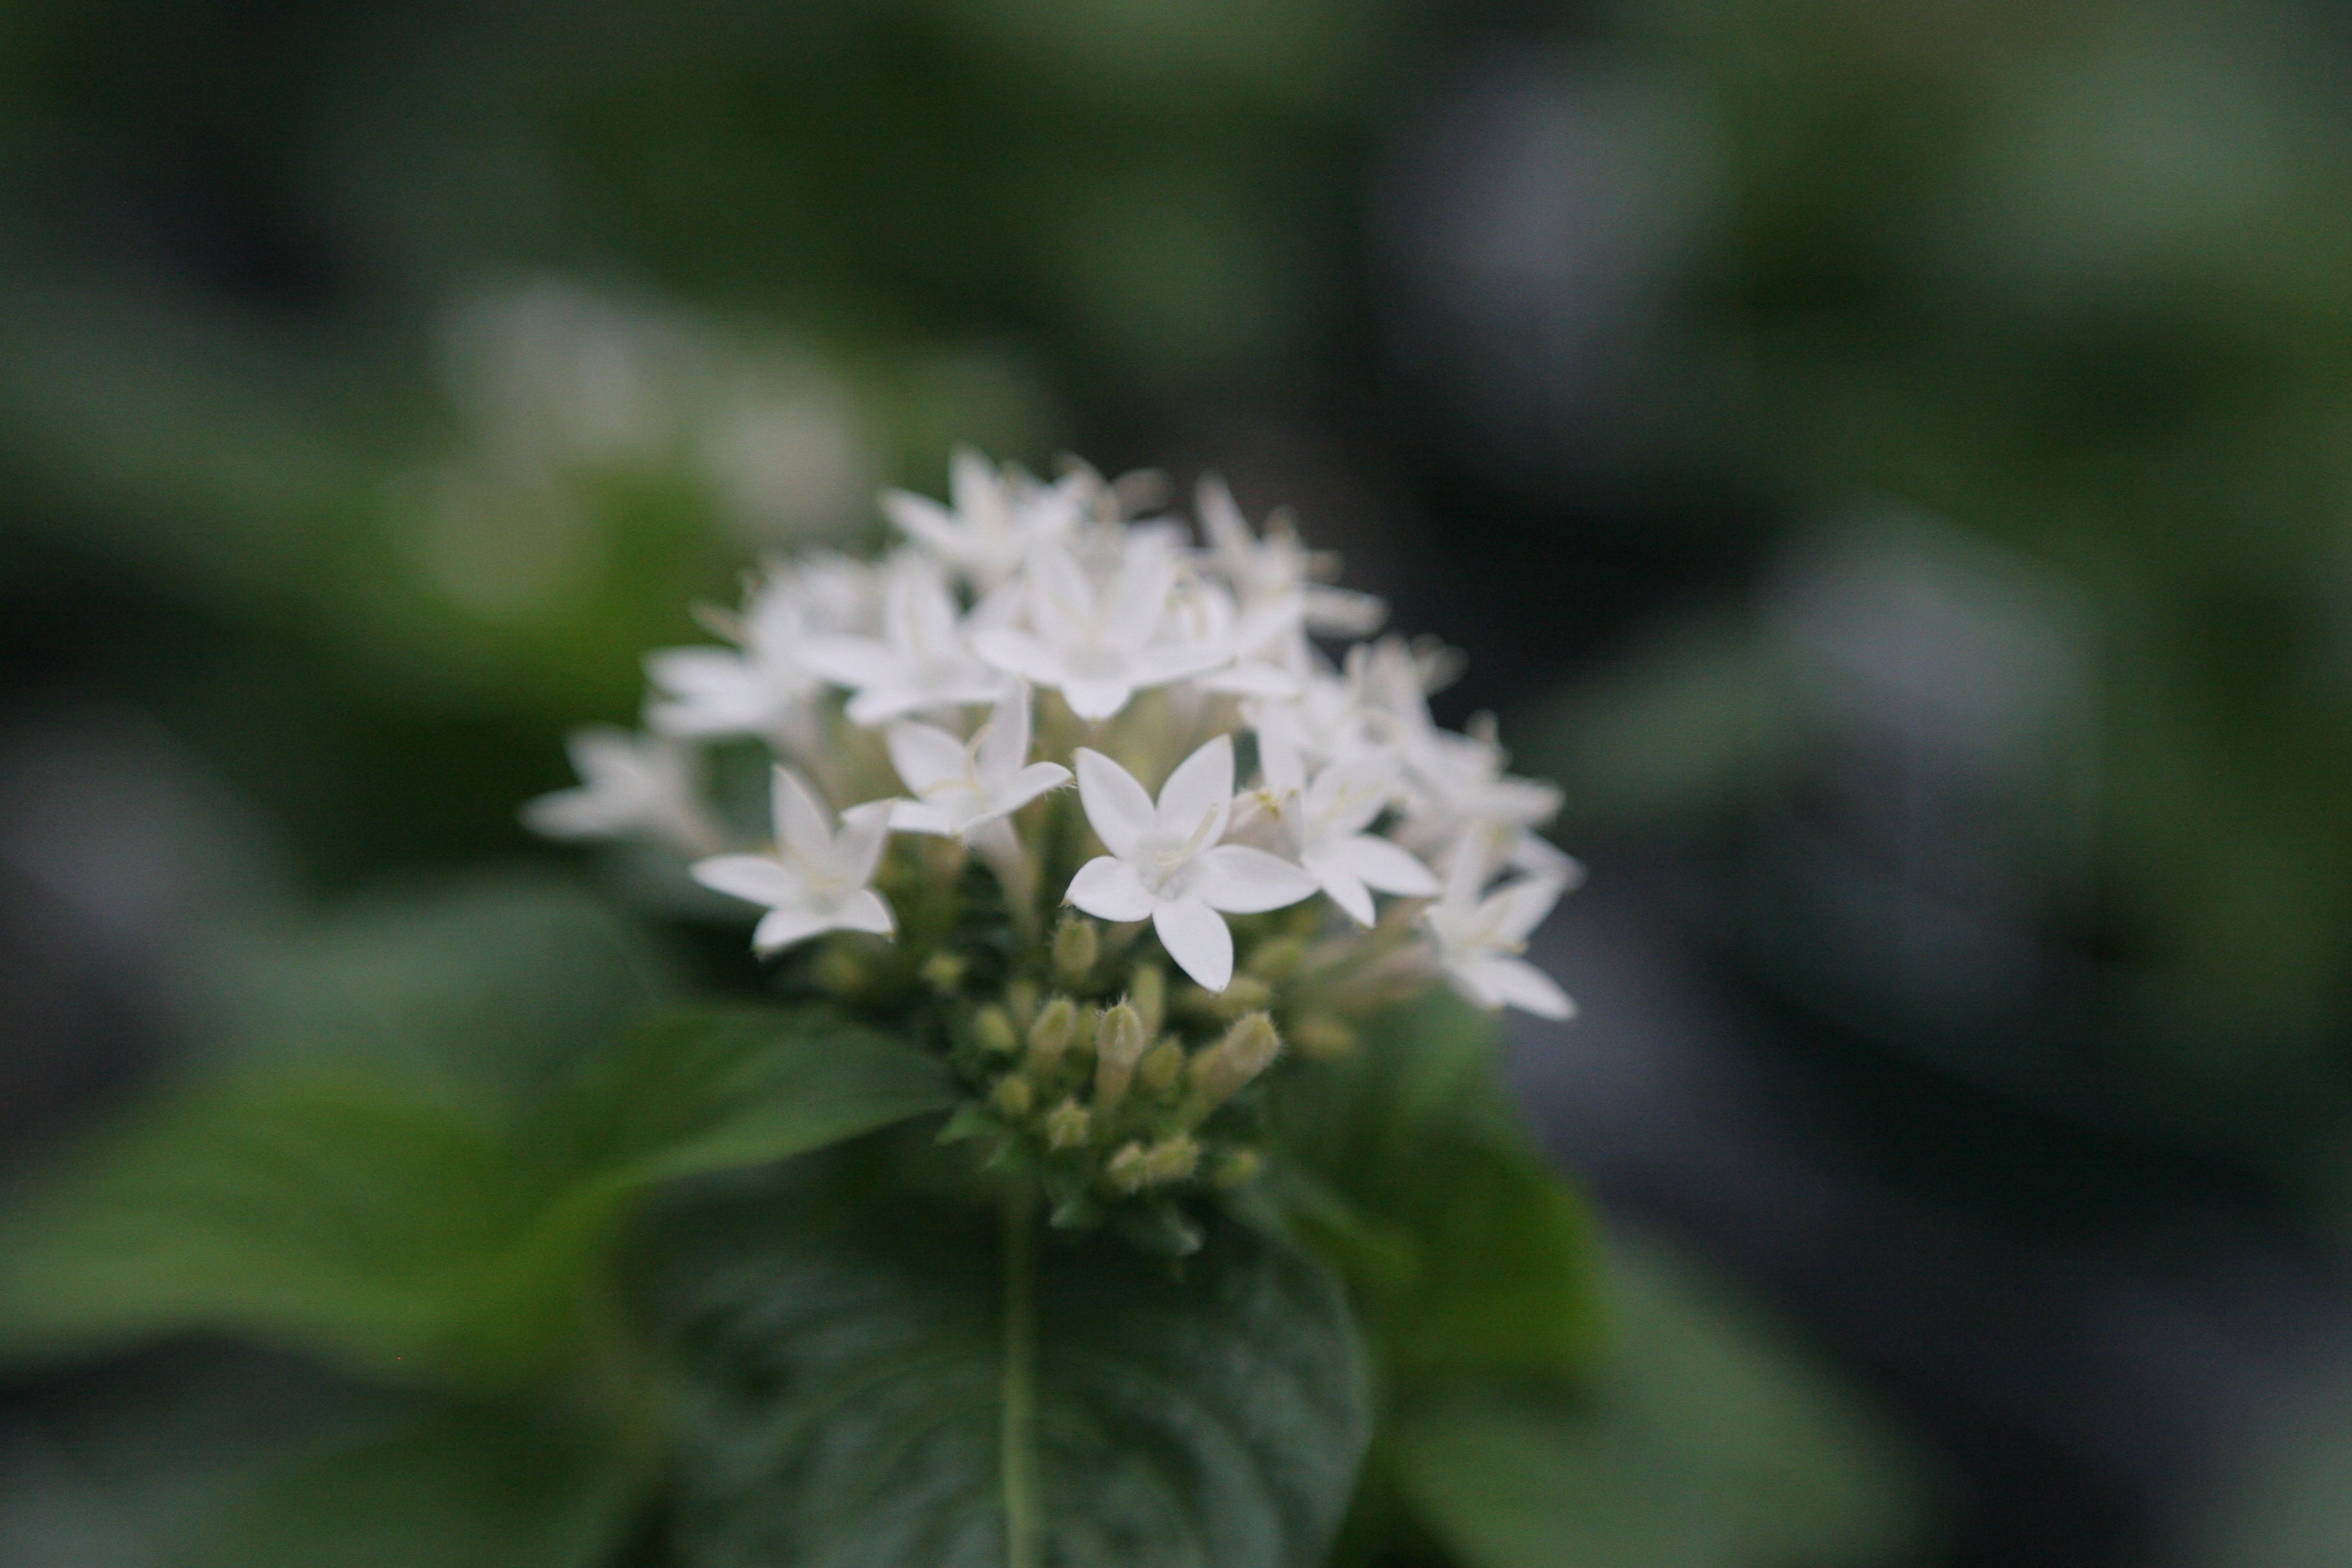 white five petal flowers with green leaves bouquet selective focus Amy Cyphers Photography Adventures